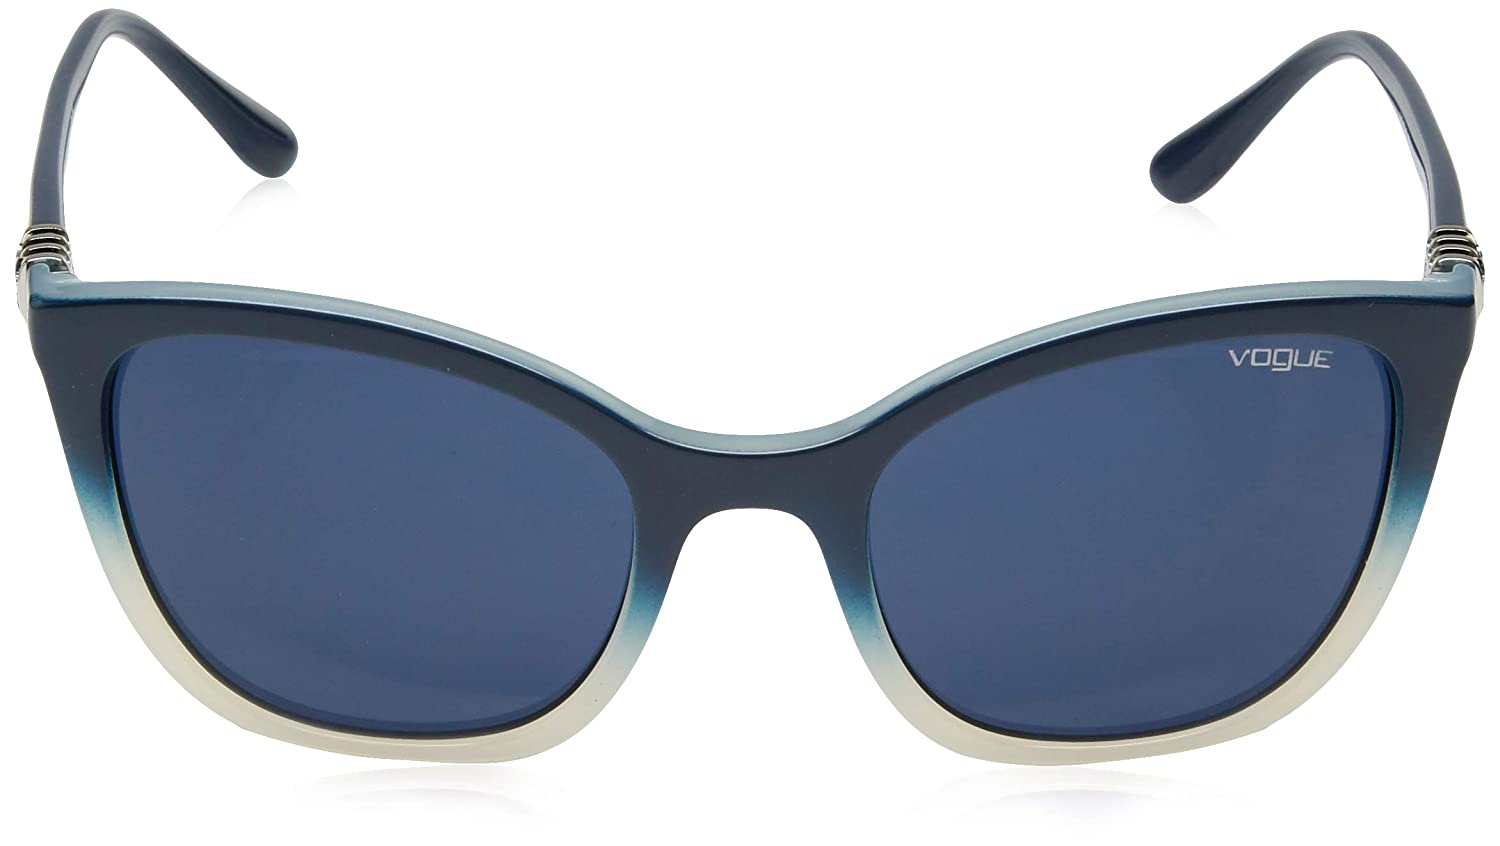 Amazon.com: Gafas de sol Vogue VO 5243 SB 266880 Top Grado ...